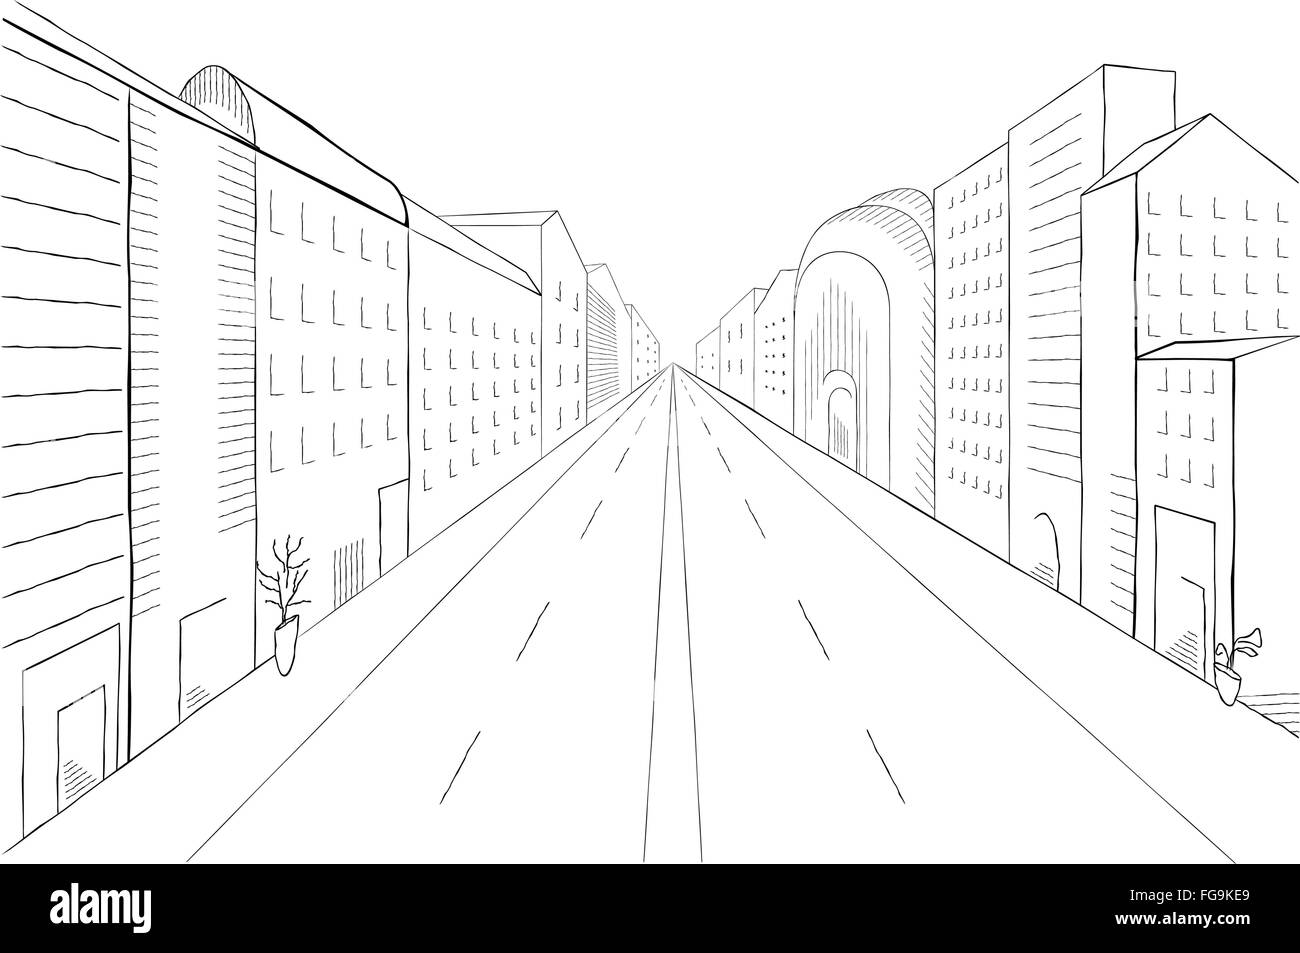 Linear Perspective For Interior Design